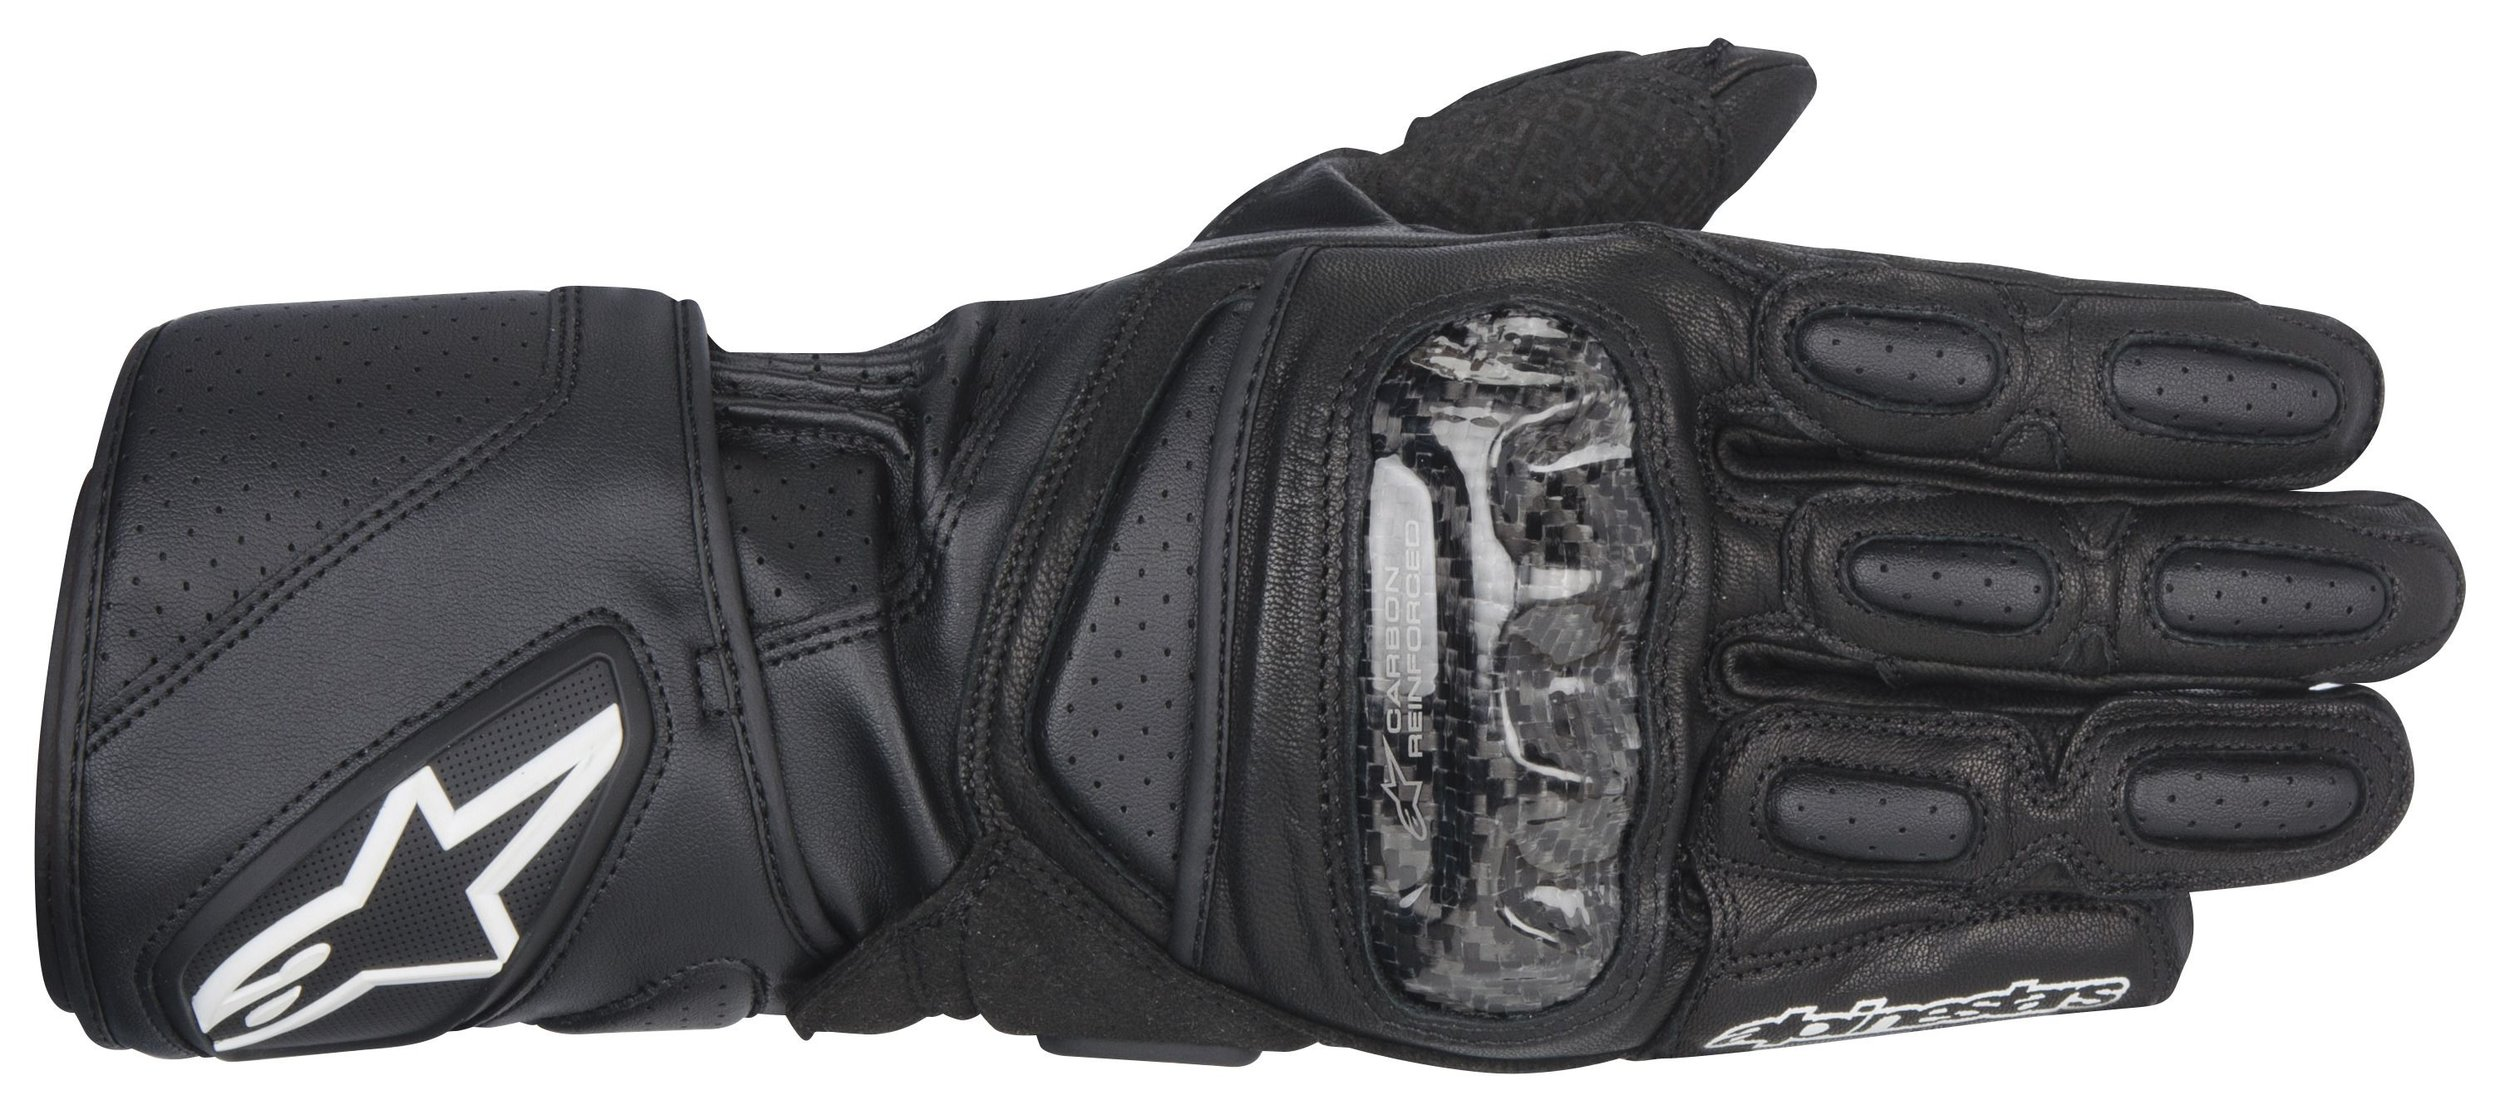 Alpinestars full length glove